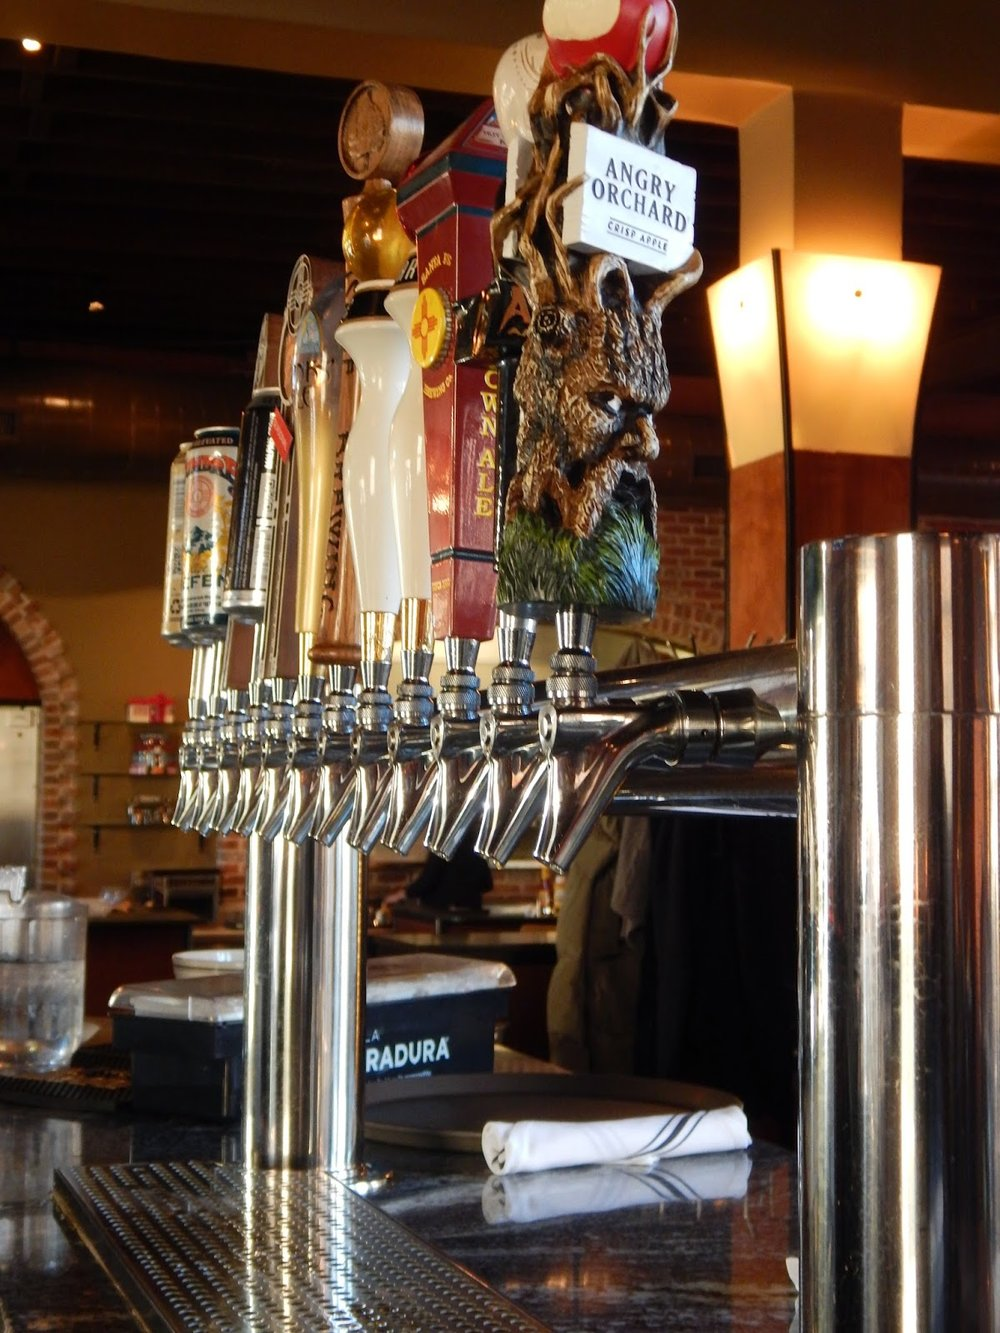 """For beer fanatics, the beverage menu also features over 10 locally brewed beers on tap with interesting names such as the """"Alien Amber Ale"""", """"Monk's Ale"""", and another cleverly named """"A Slice Of Hefen""""."""